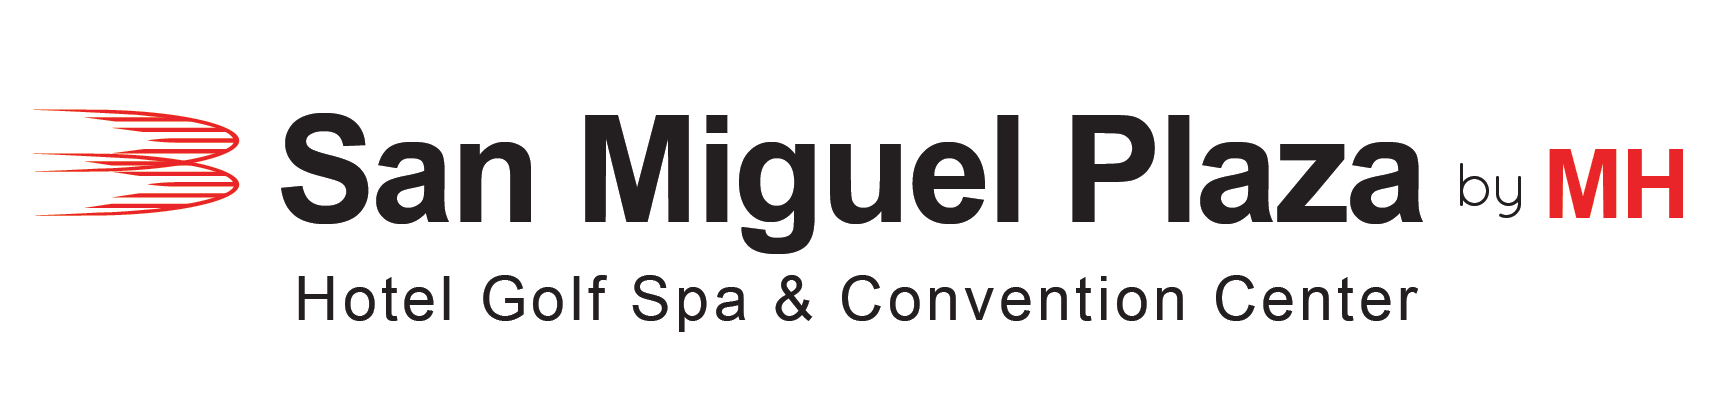 Hotel San Miguel Plaza Hotel Golf Spa & Convention Center